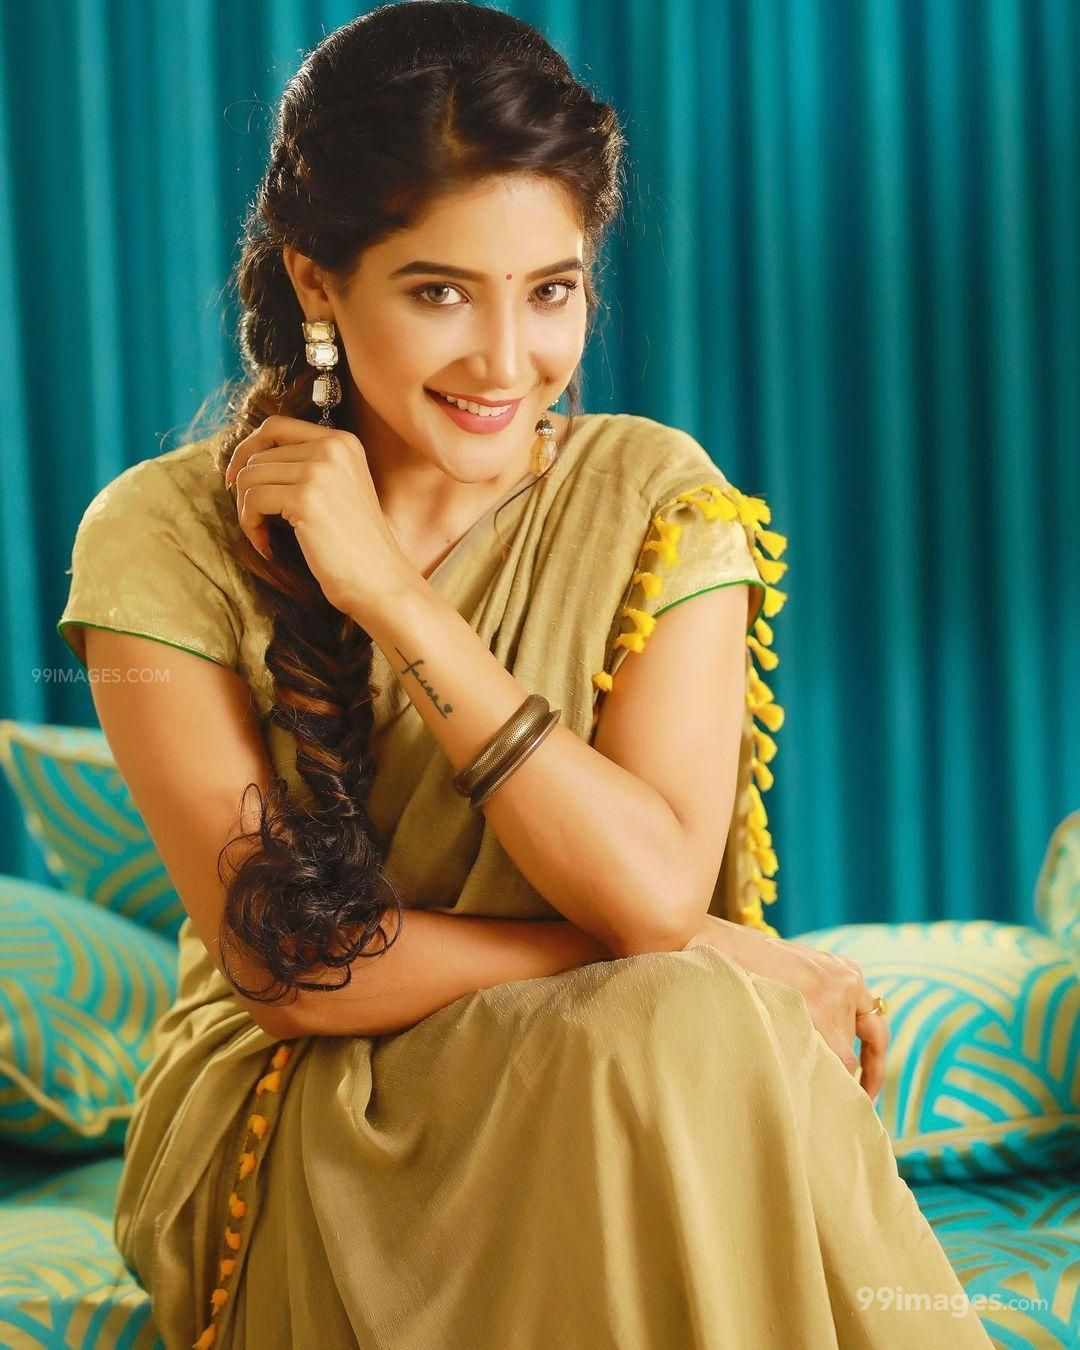 Sakshi Agarwal Hot HD Photos & Wallpapers for mobile (1080p) (618657) - Sakshi Agarwal